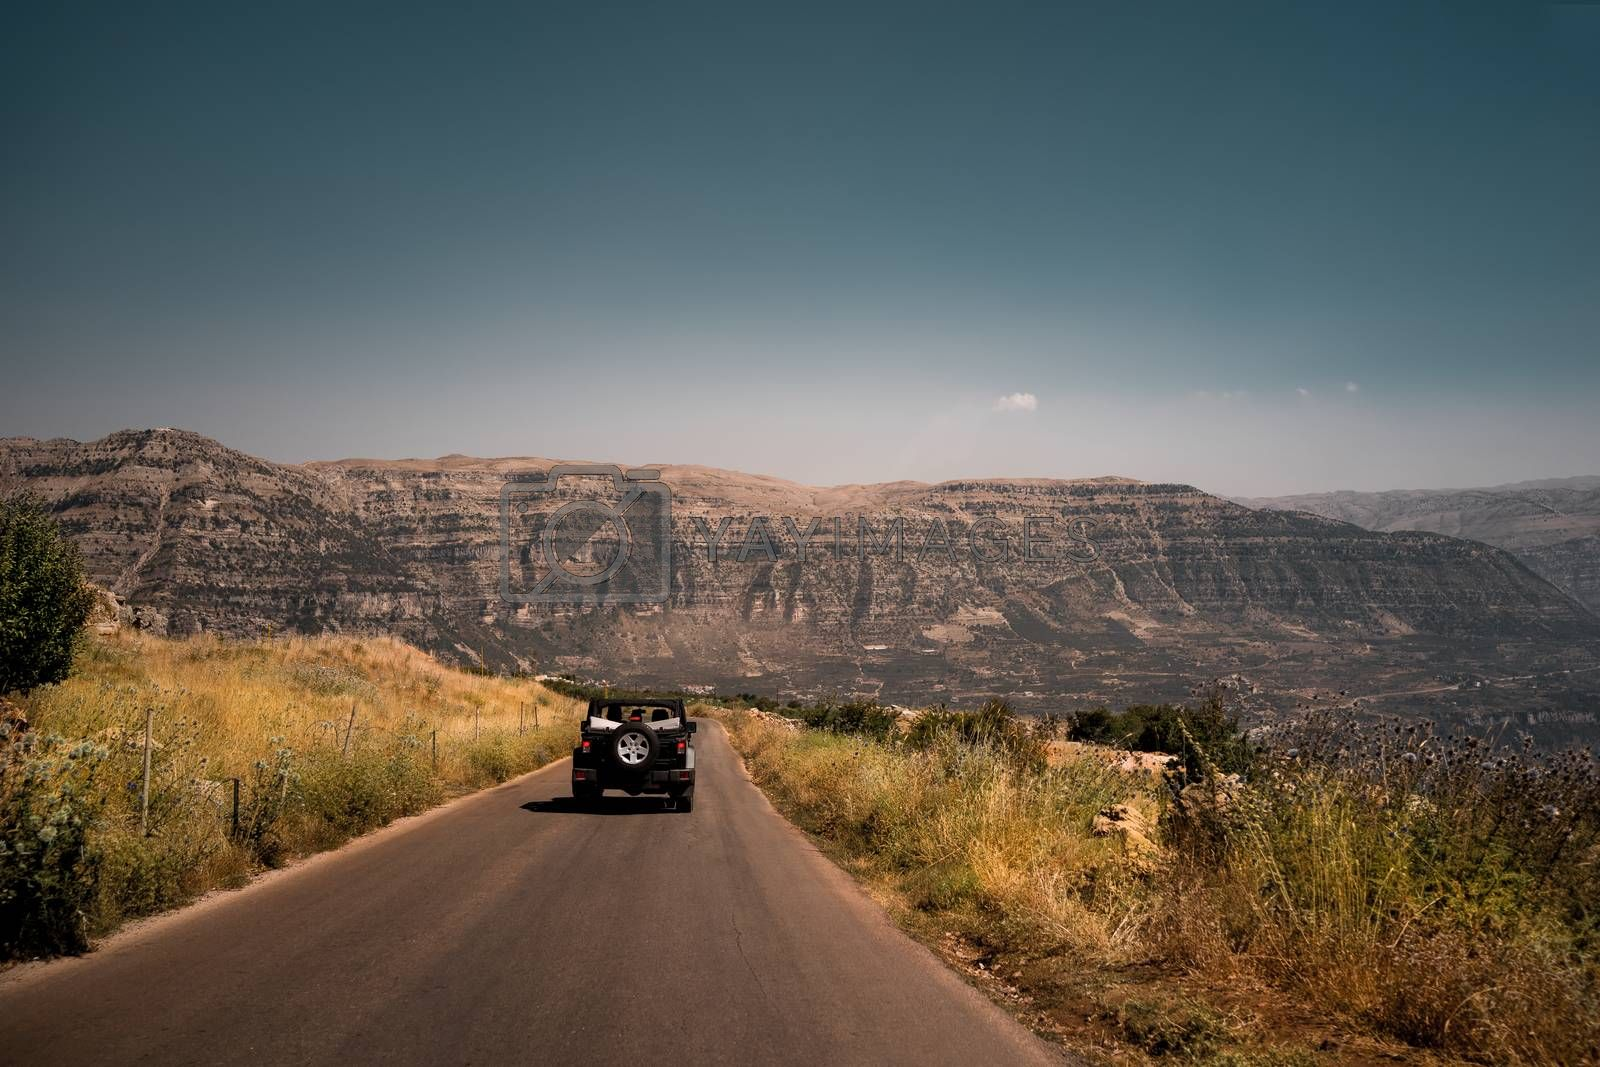 Road Trip. Car Drives on a Deserted Road Towards the Mount Lebanon. Traveling in the Car. Active Summer Vacation.